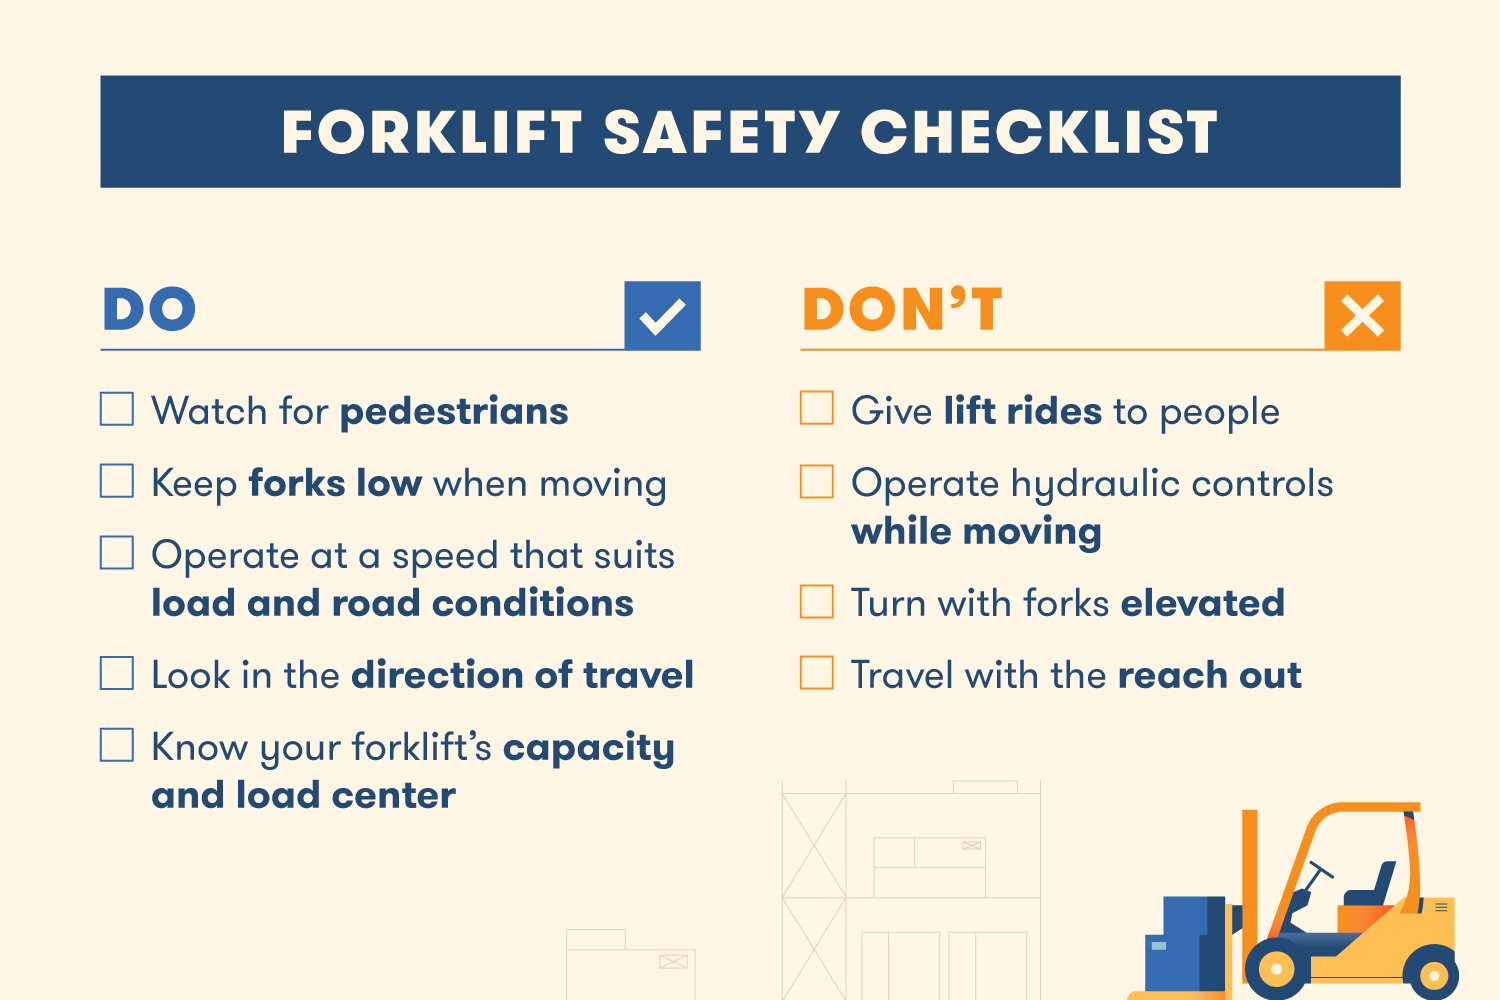 forklift safety checklist